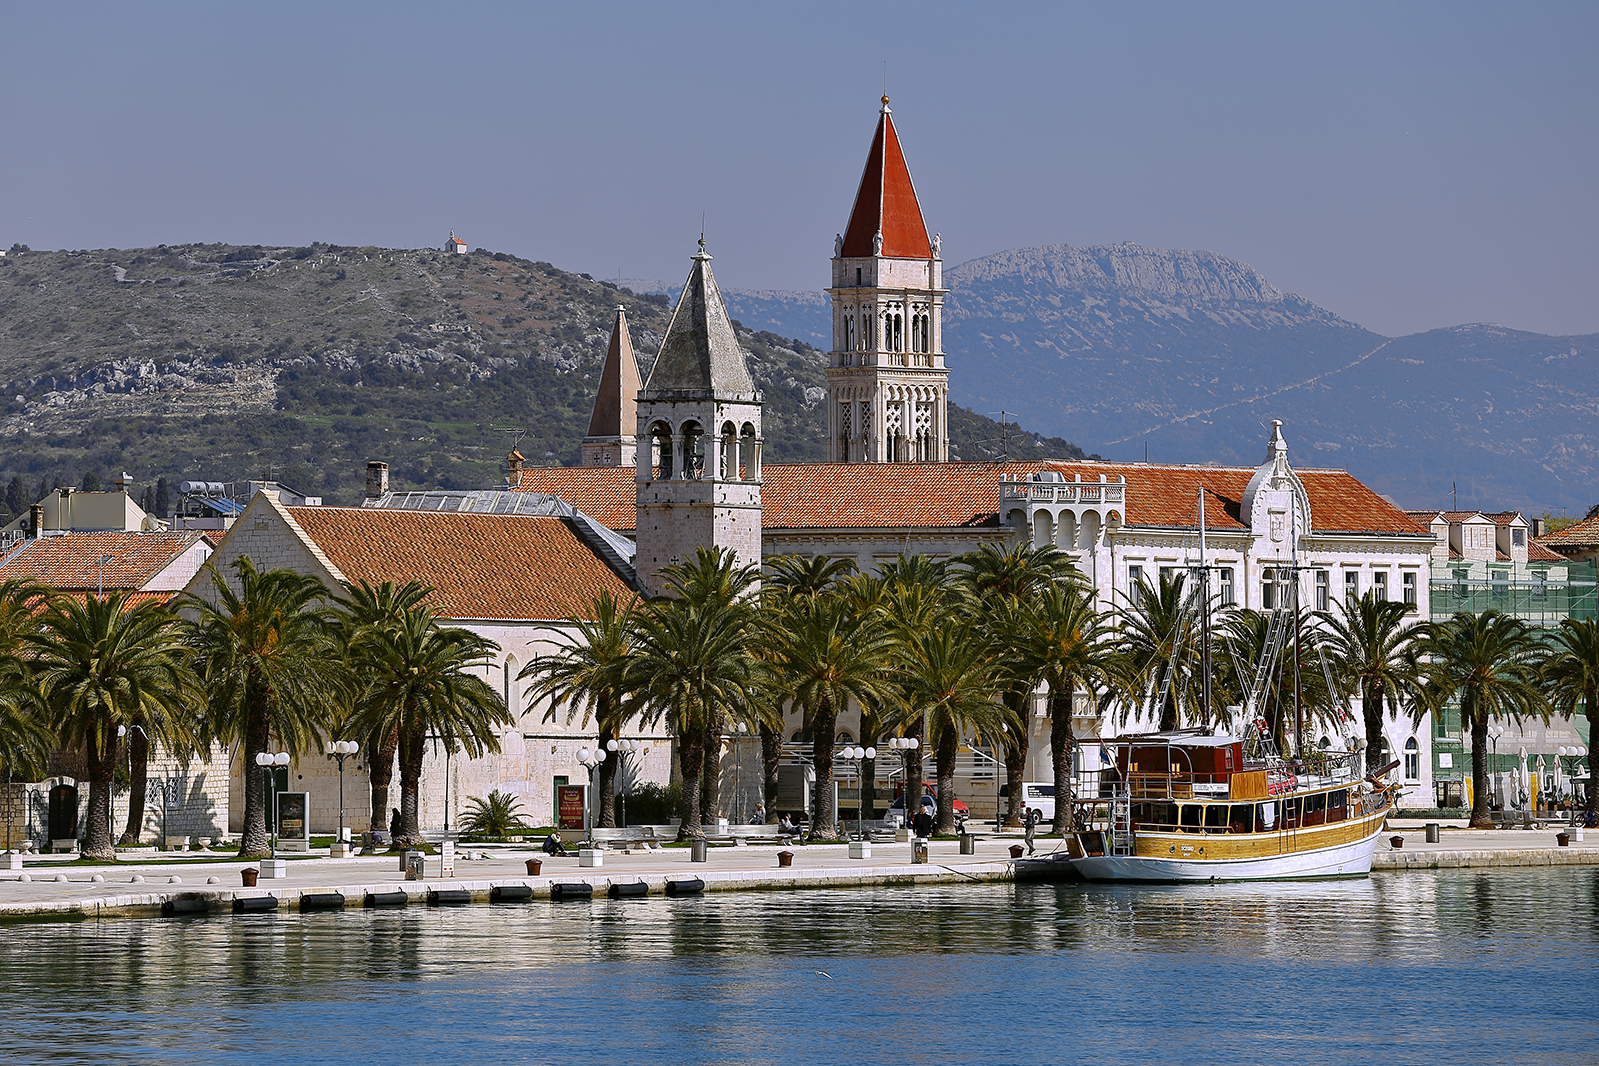 City of Trogir Croatia